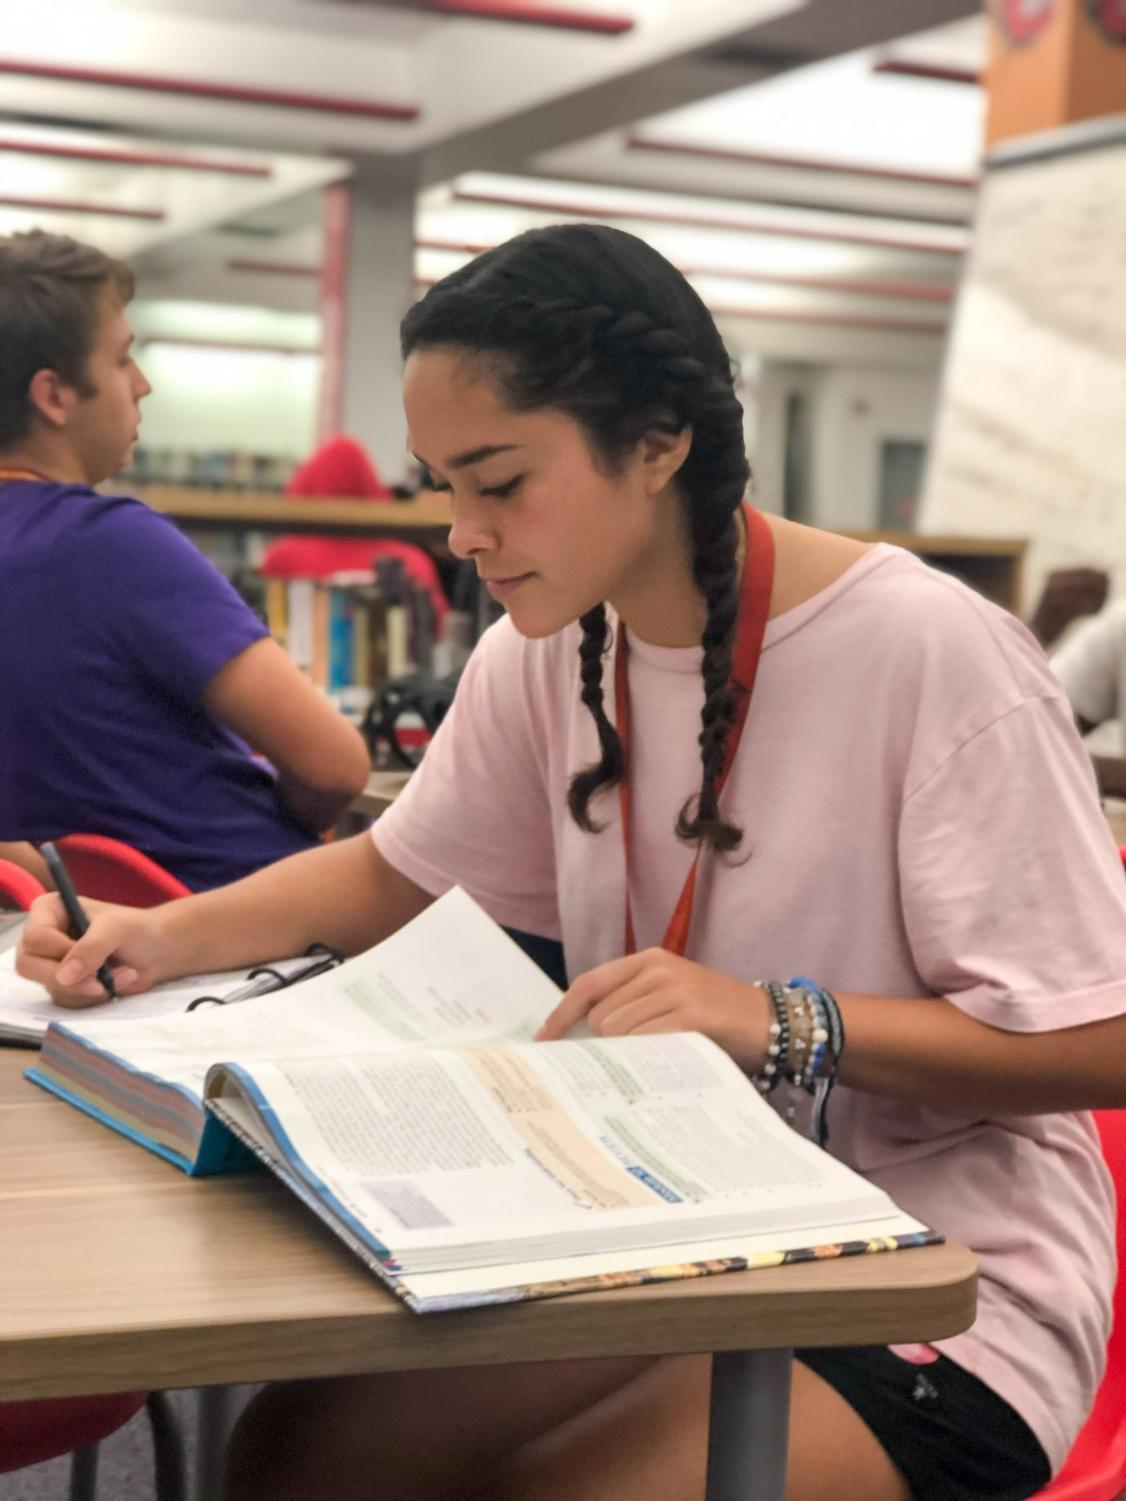 Senior Almendra Gutierez reading her textbook in the South Broward High School  library.